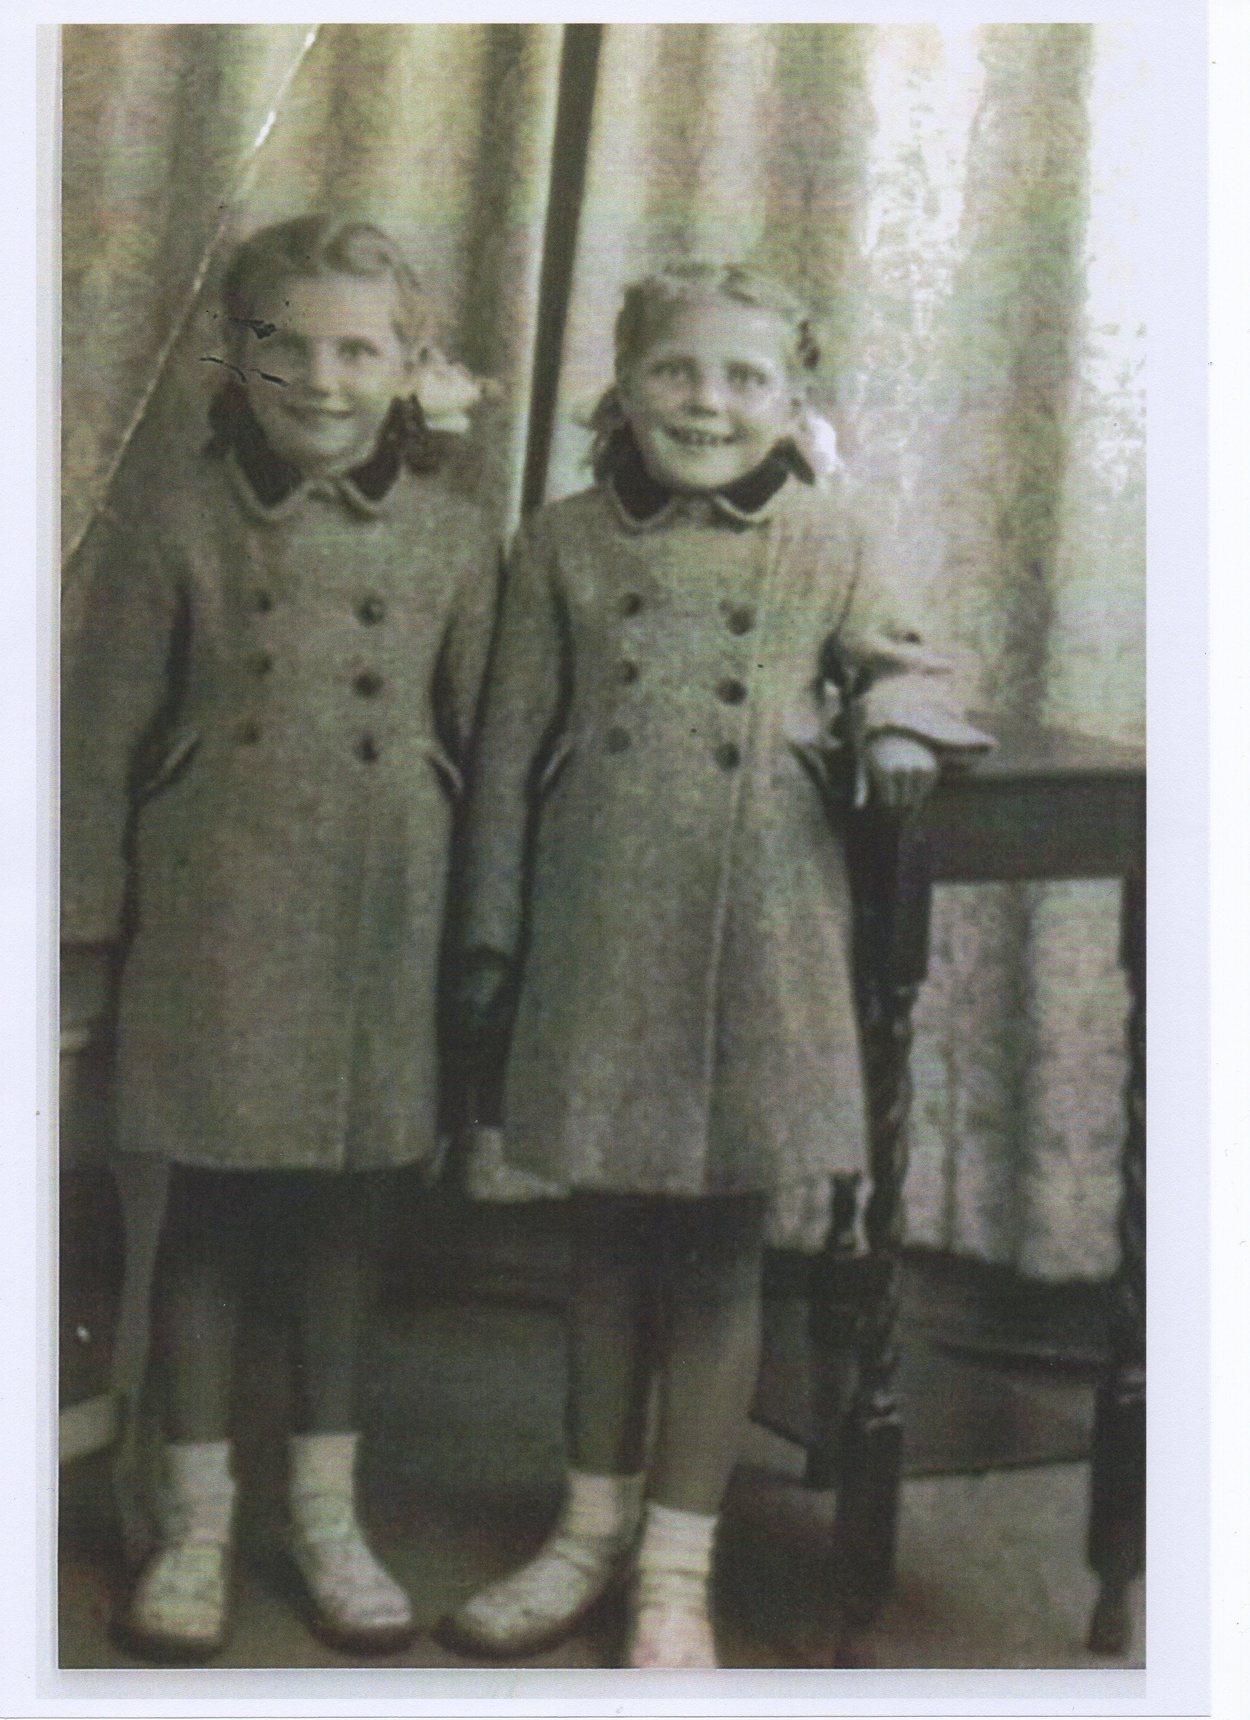 The Twins smartly dressed in their Tailored Coats,